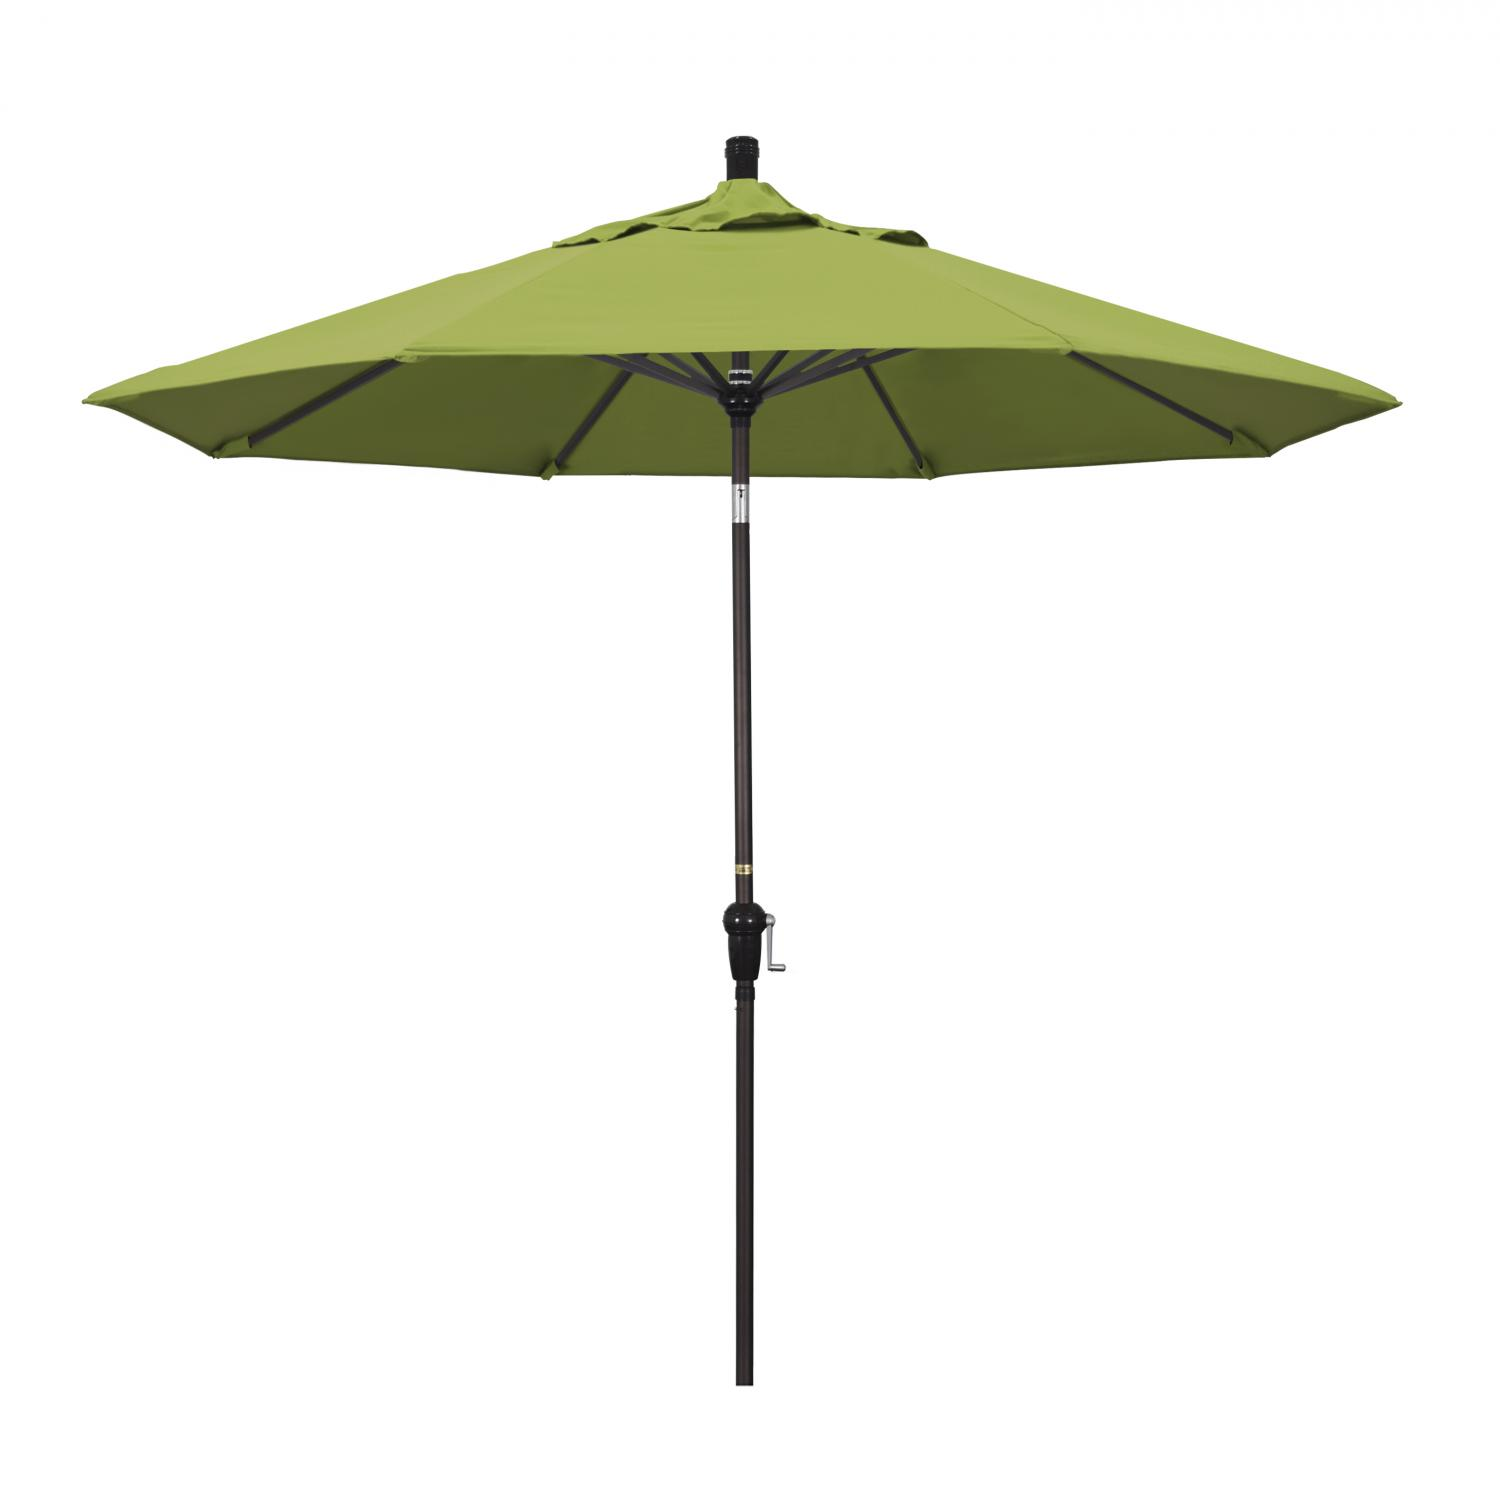 California Umbrella 9 Ft. Octagonal Aluminum Auto Tilt Patio Umbrella W/ Crank Lift & Aluminum Ribs - Bronze Frame / Sunbrella Canvas Macaw Canopy